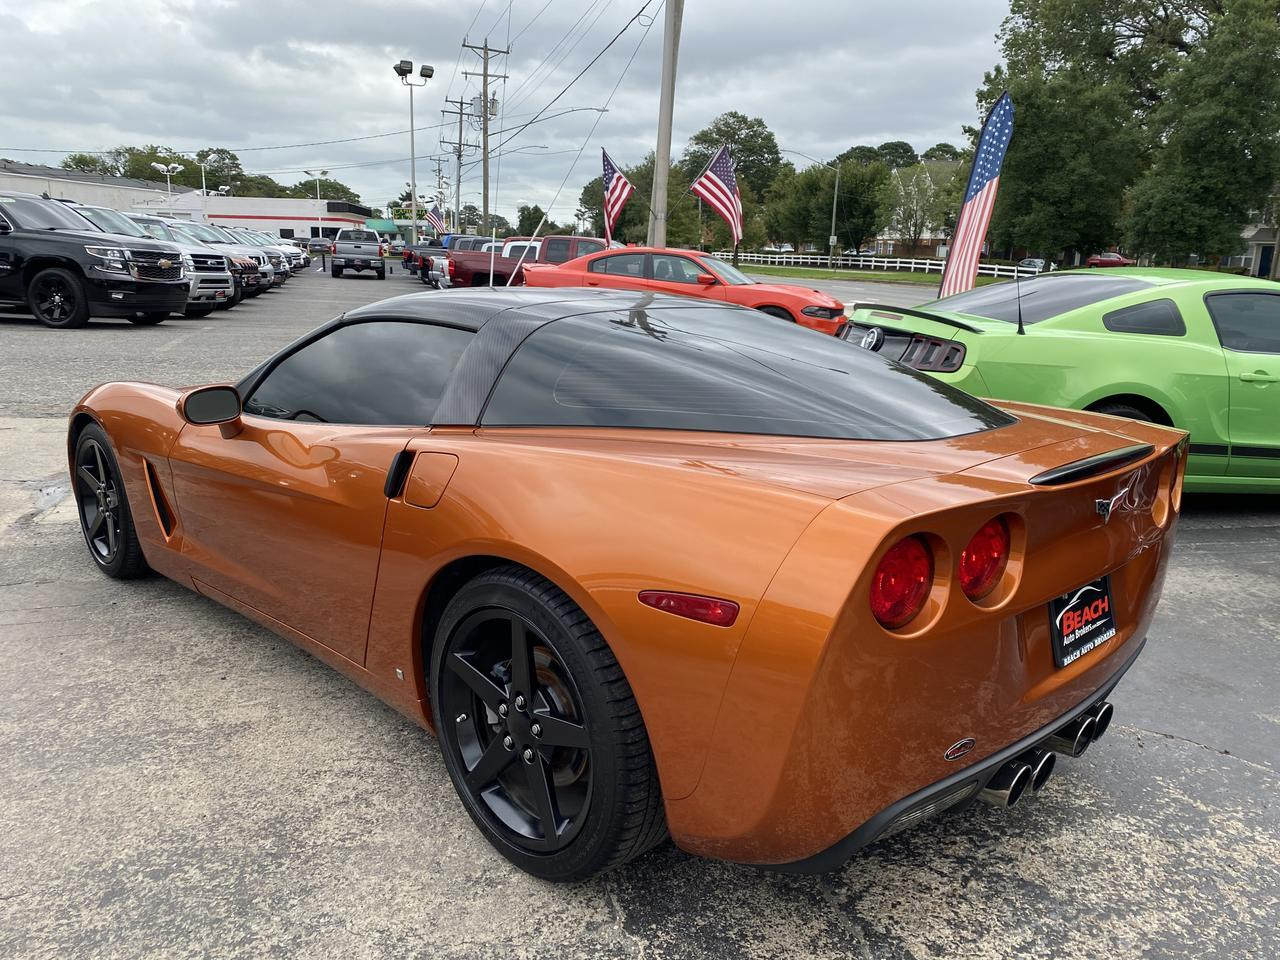 2007 CHEVROLET CORVETTE COUPE, WARRANTY, LEATHER,HEATED SEATS, BLUETOOTH, SUNROOF, CLEAN CARFAX, LOW MILES! Norfolk VA